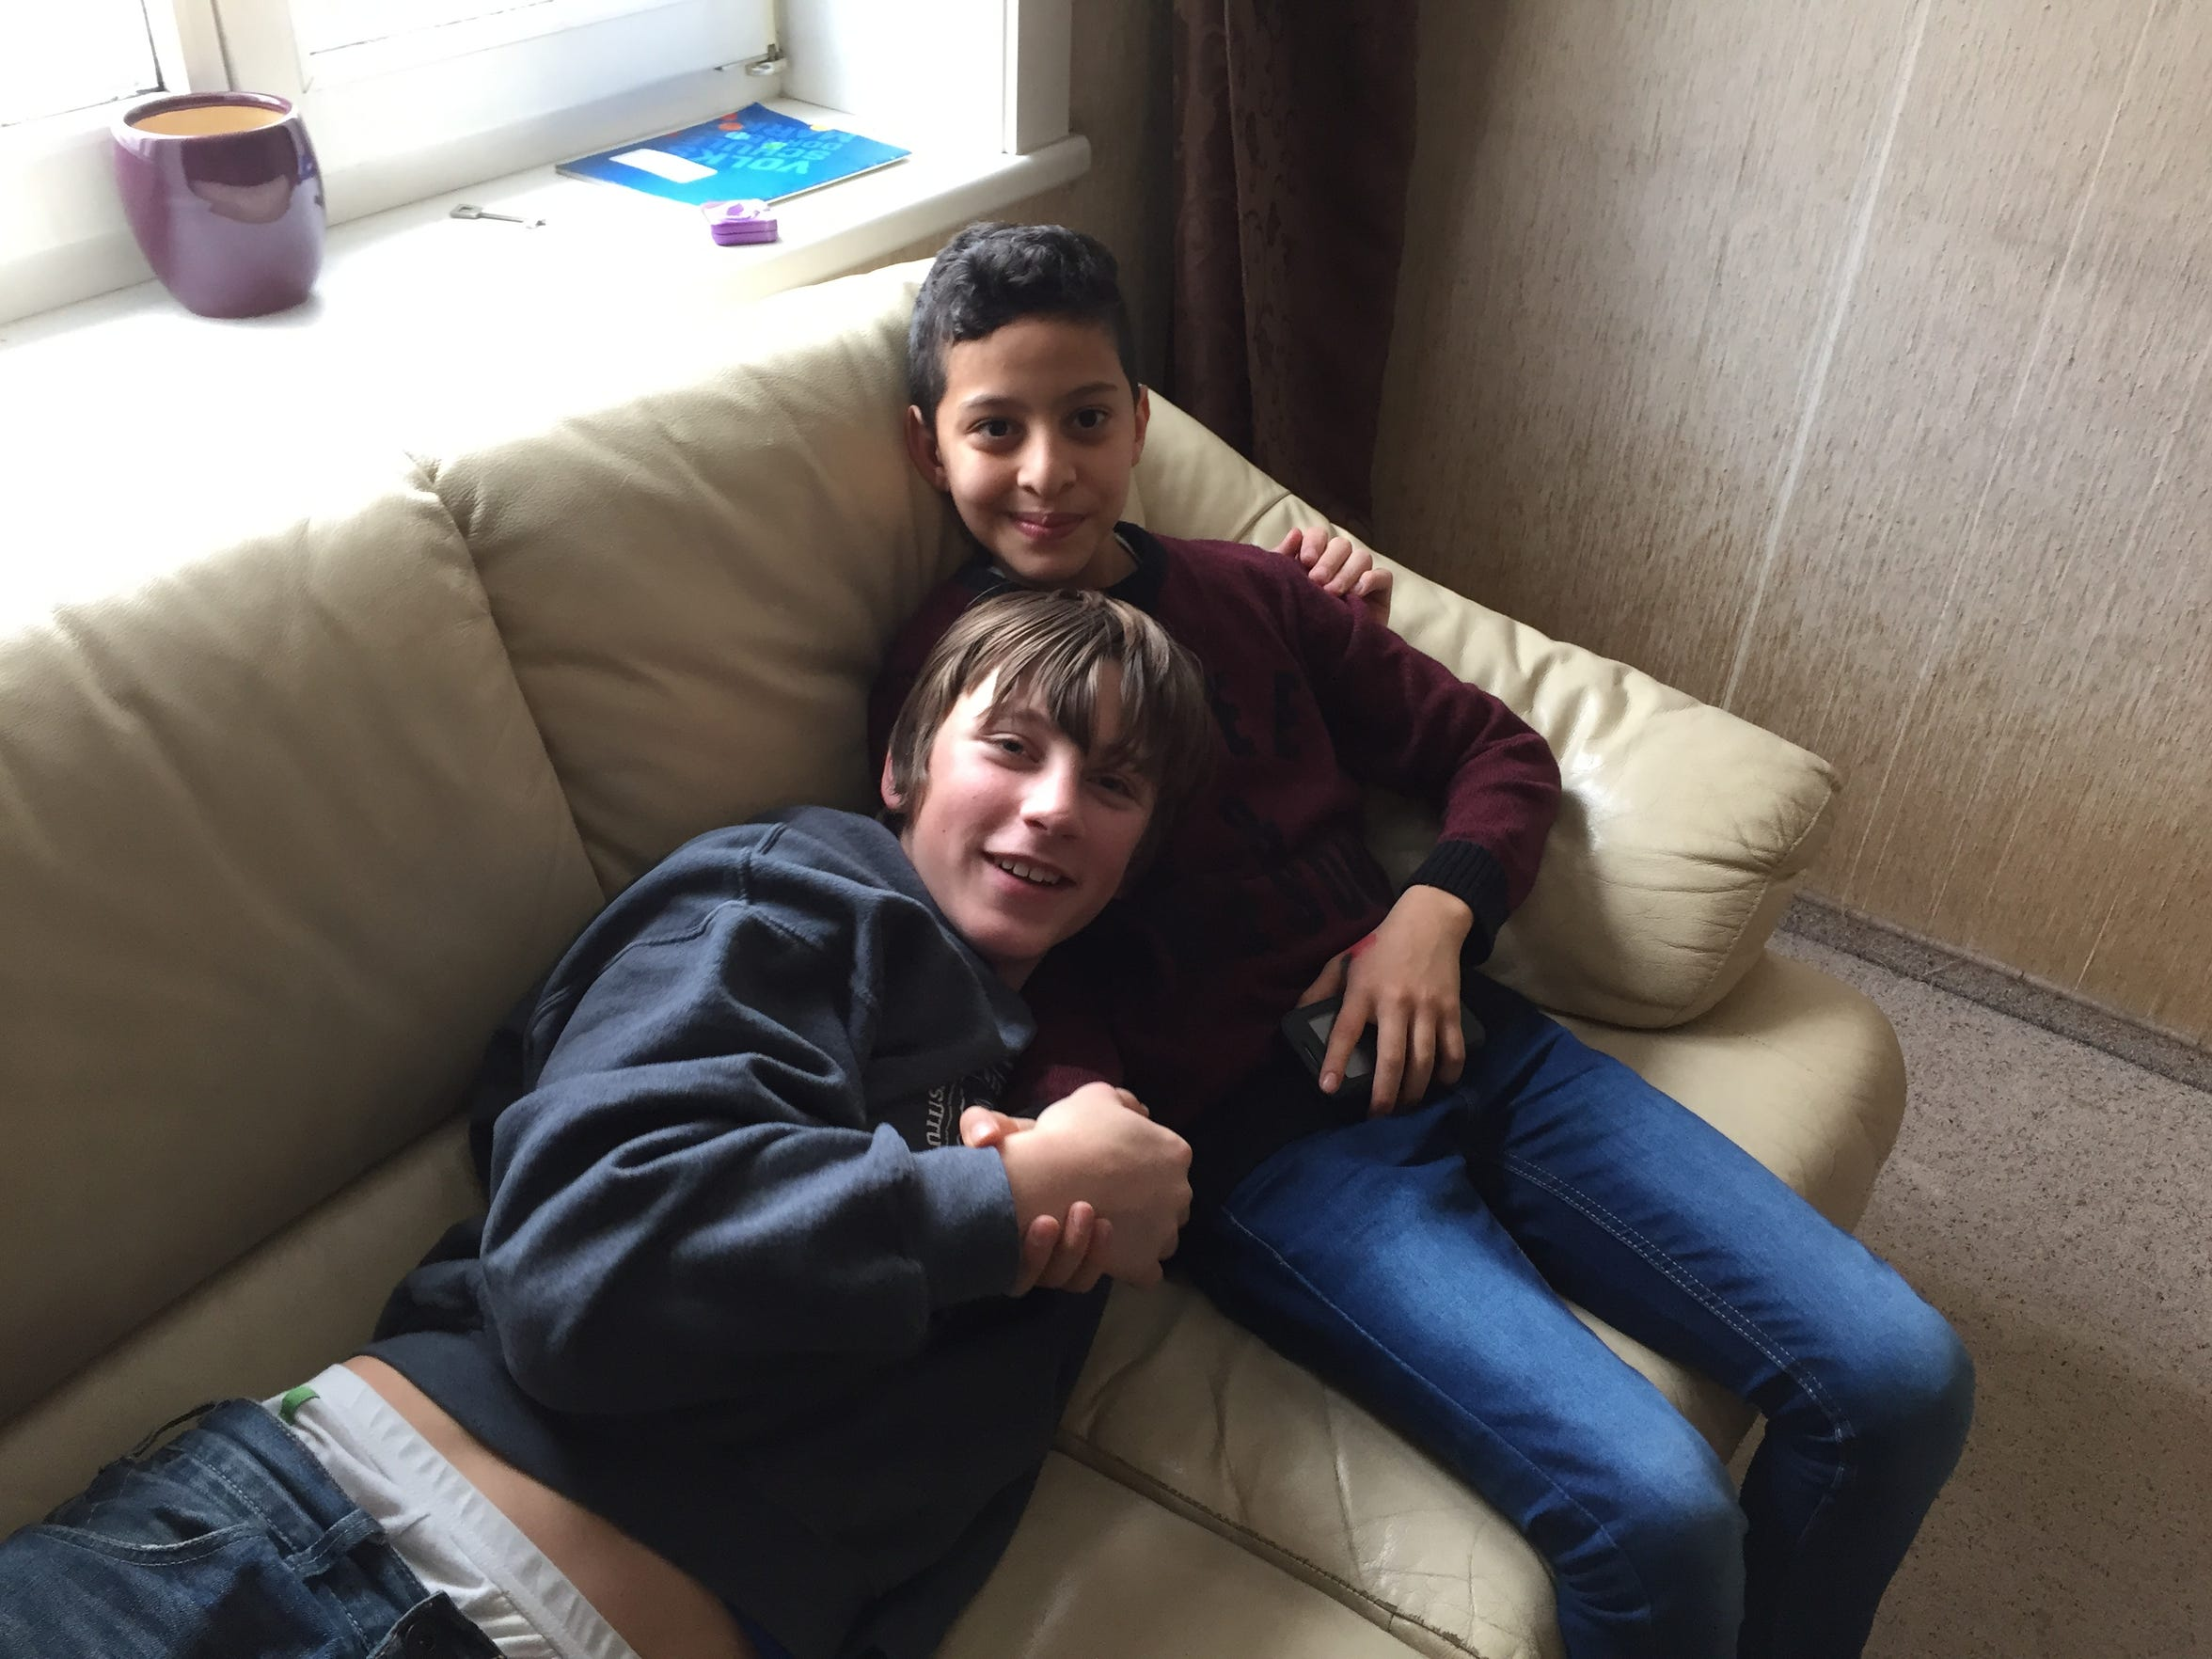 Sasha Griesser, 13, left, and his new friend Mohamad